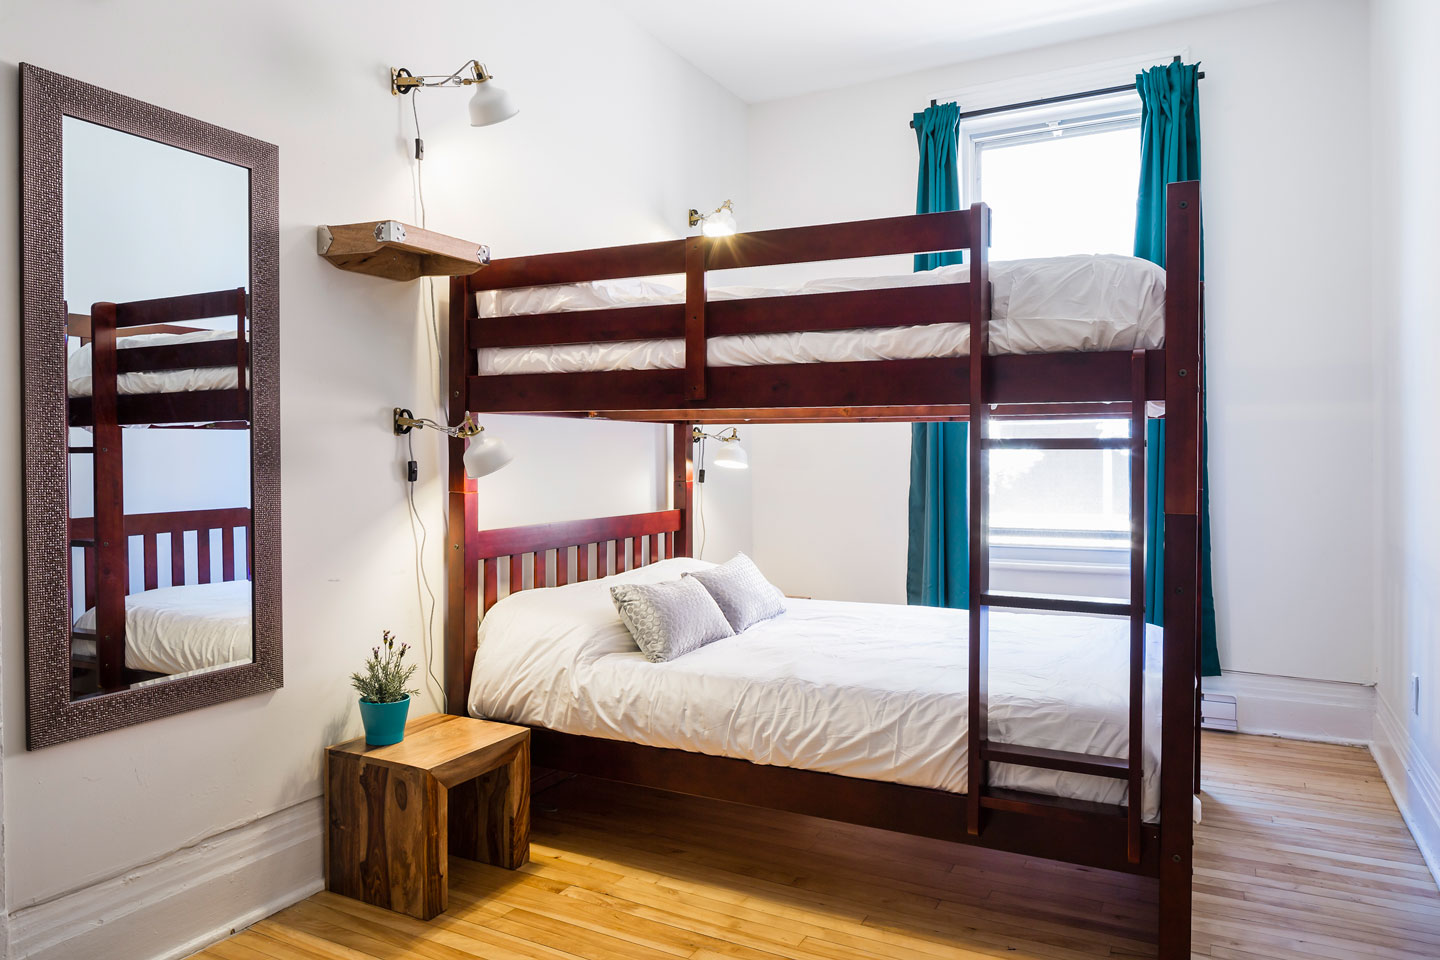 Chic Laurier #2: third bedroom with a double/double bunk bed, all with memory foam mattresses